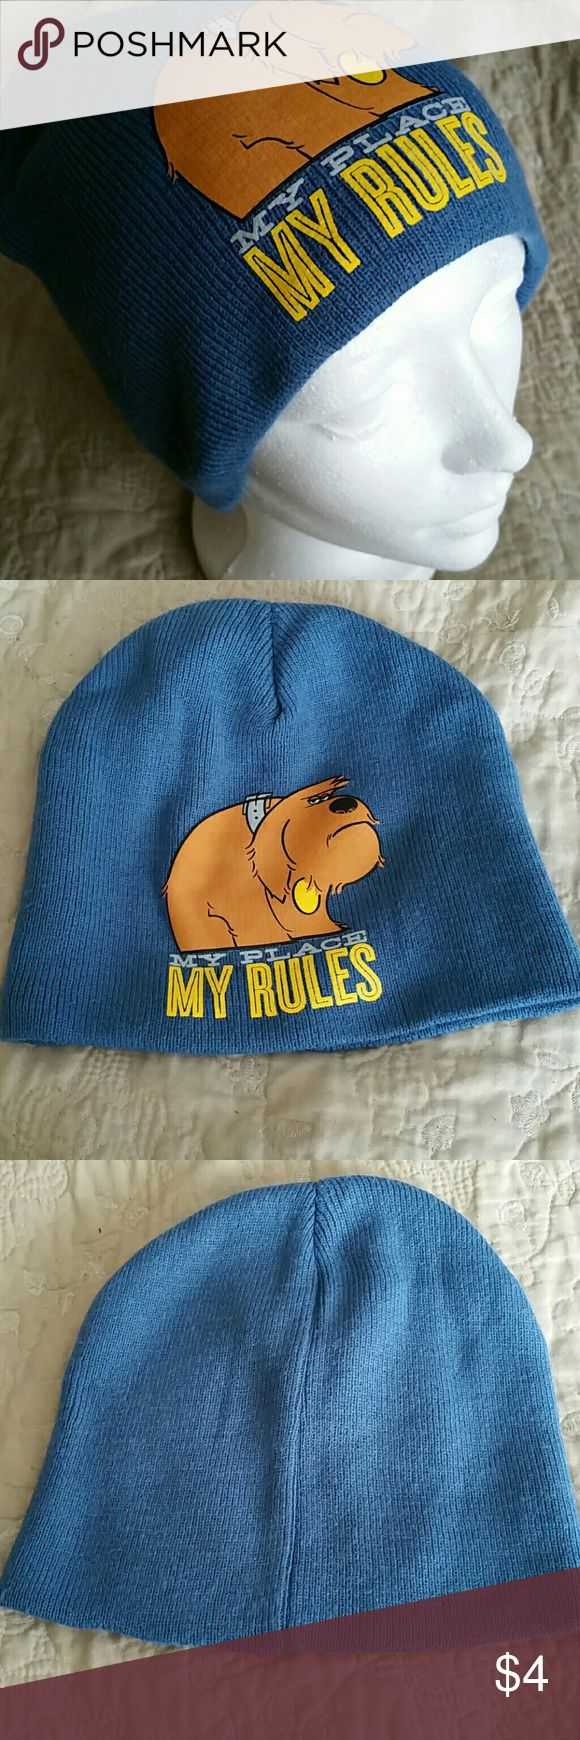 """The Secret Life of Pets Beanie Blue beanie featuring Duke,  """"My place my rules"""", character from the Secret Life of Pets (Illumination Entertainment). NWOT. Illumination Entertainment Accessories Hats"""